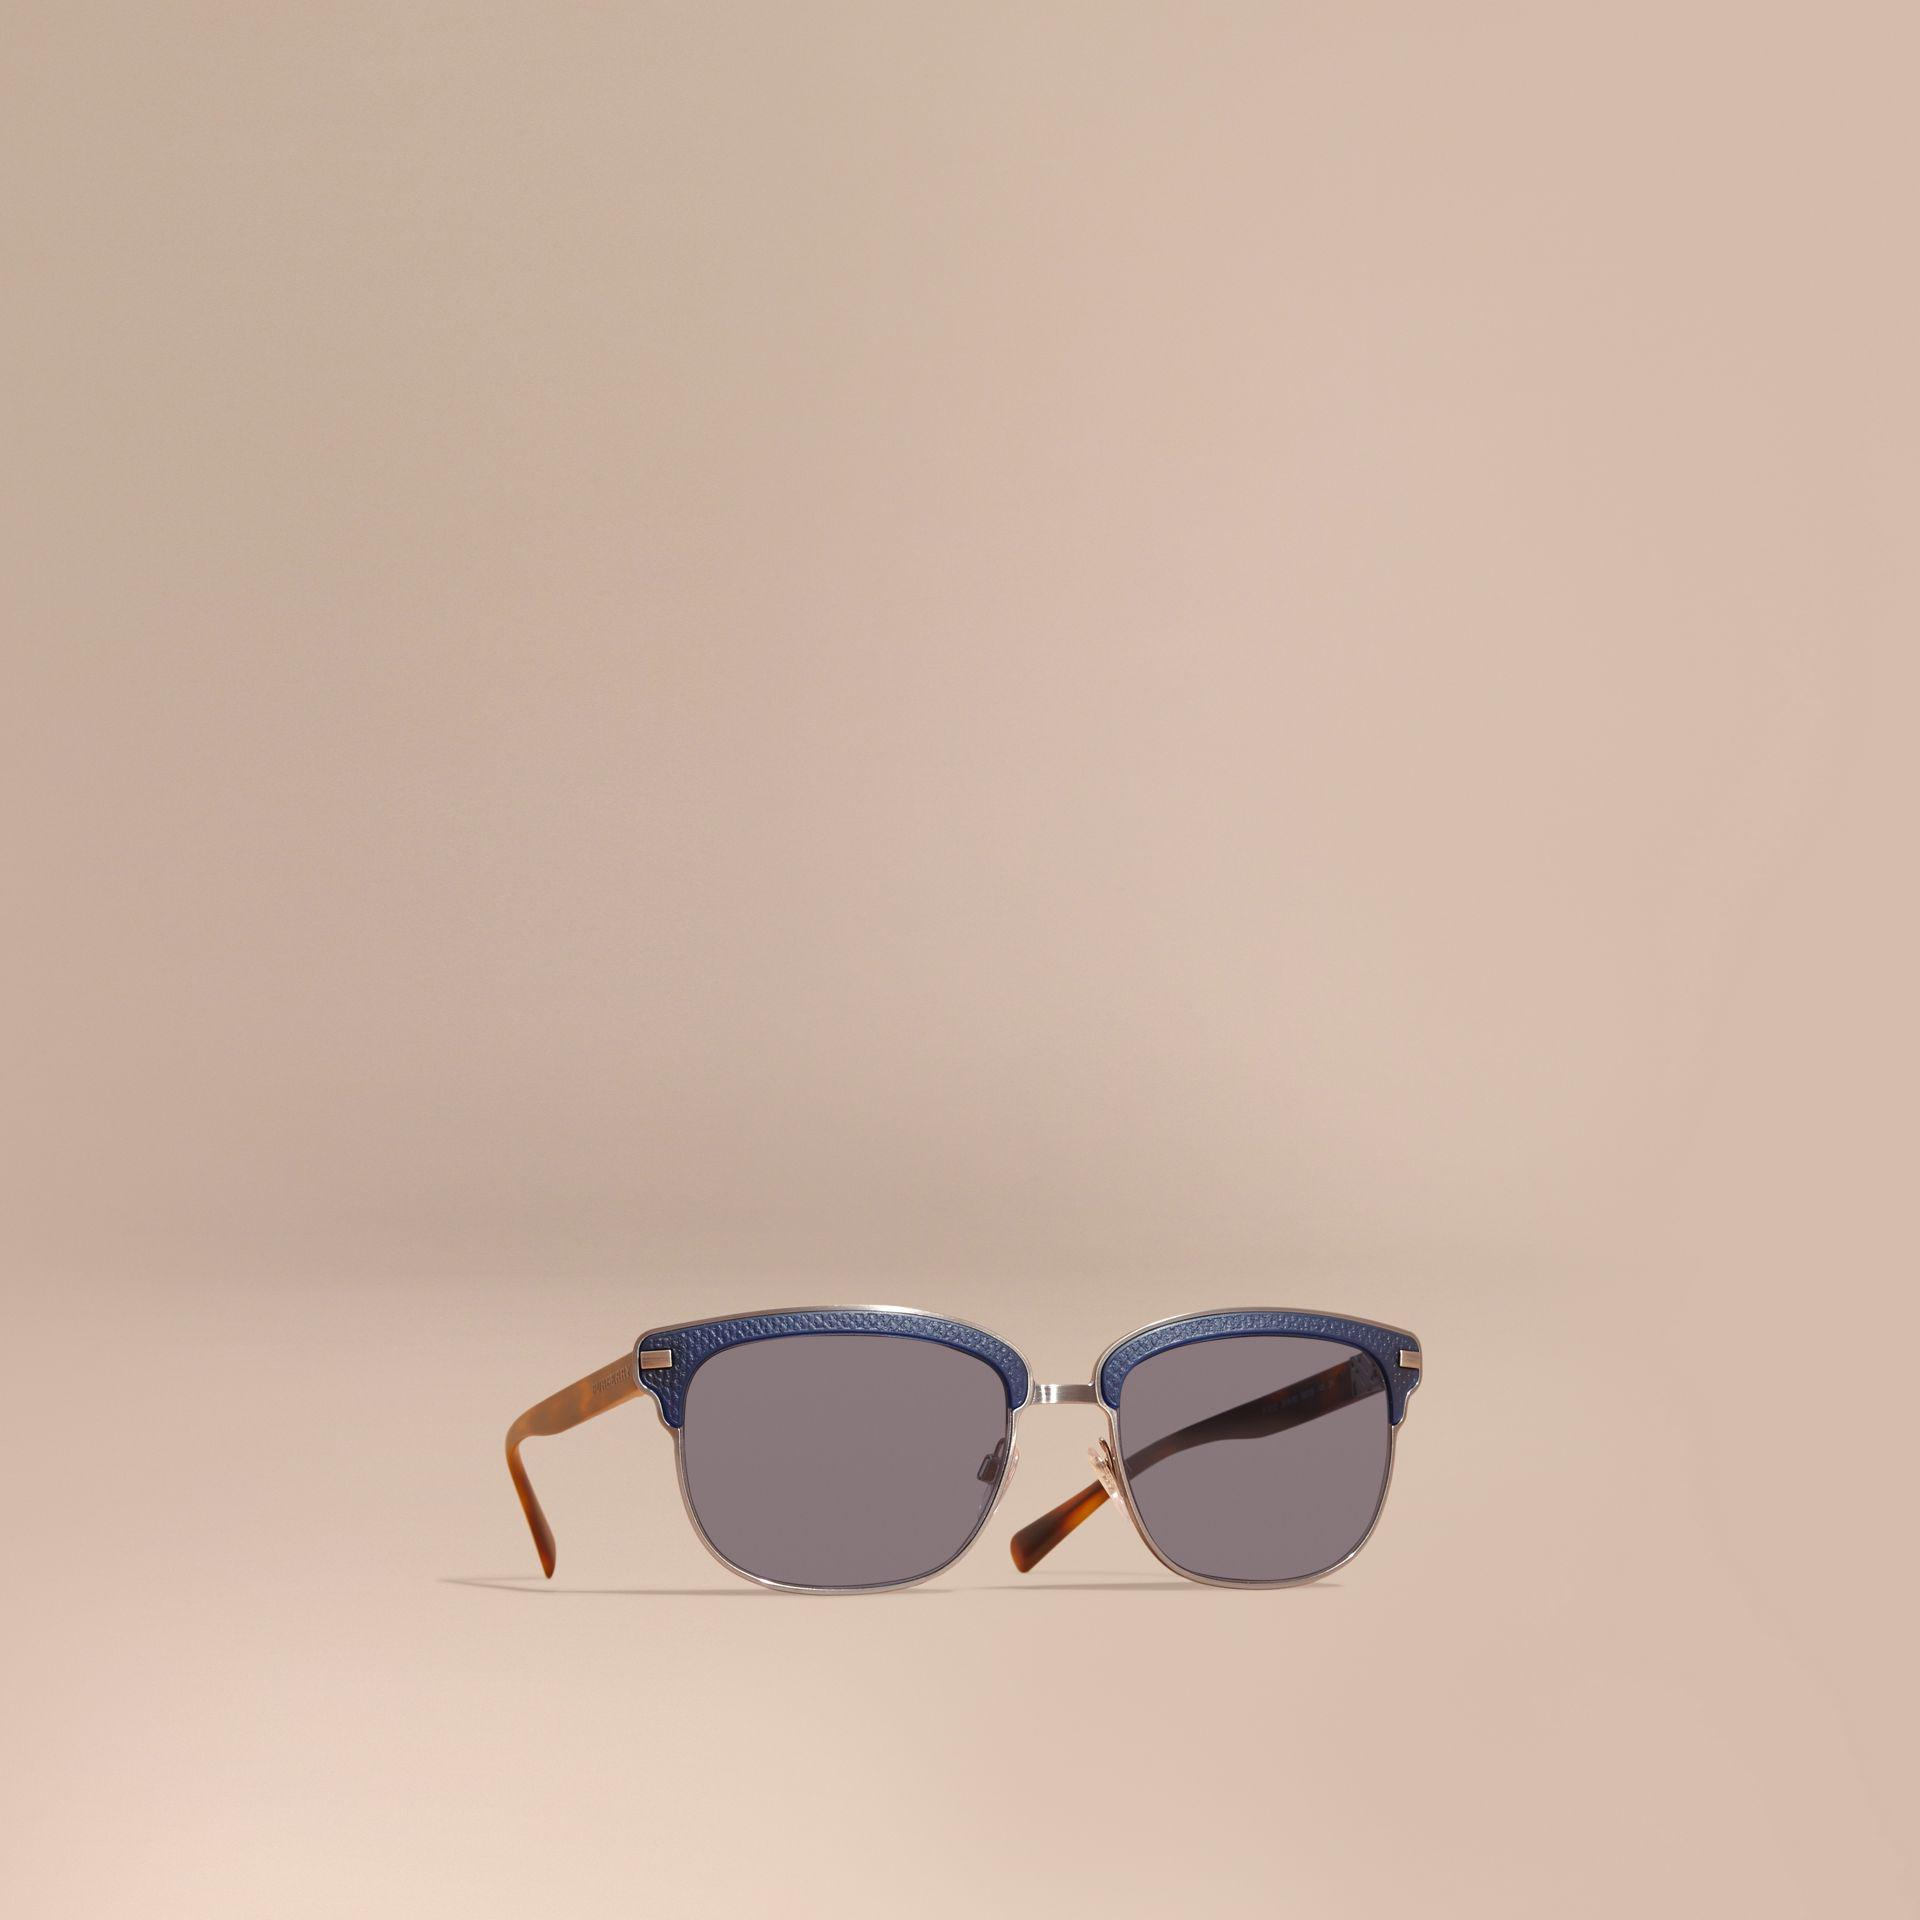 72b84ec1d1f Lyst - Burberry Textured Front Square Frame Sunglasses Dark Navy in ...